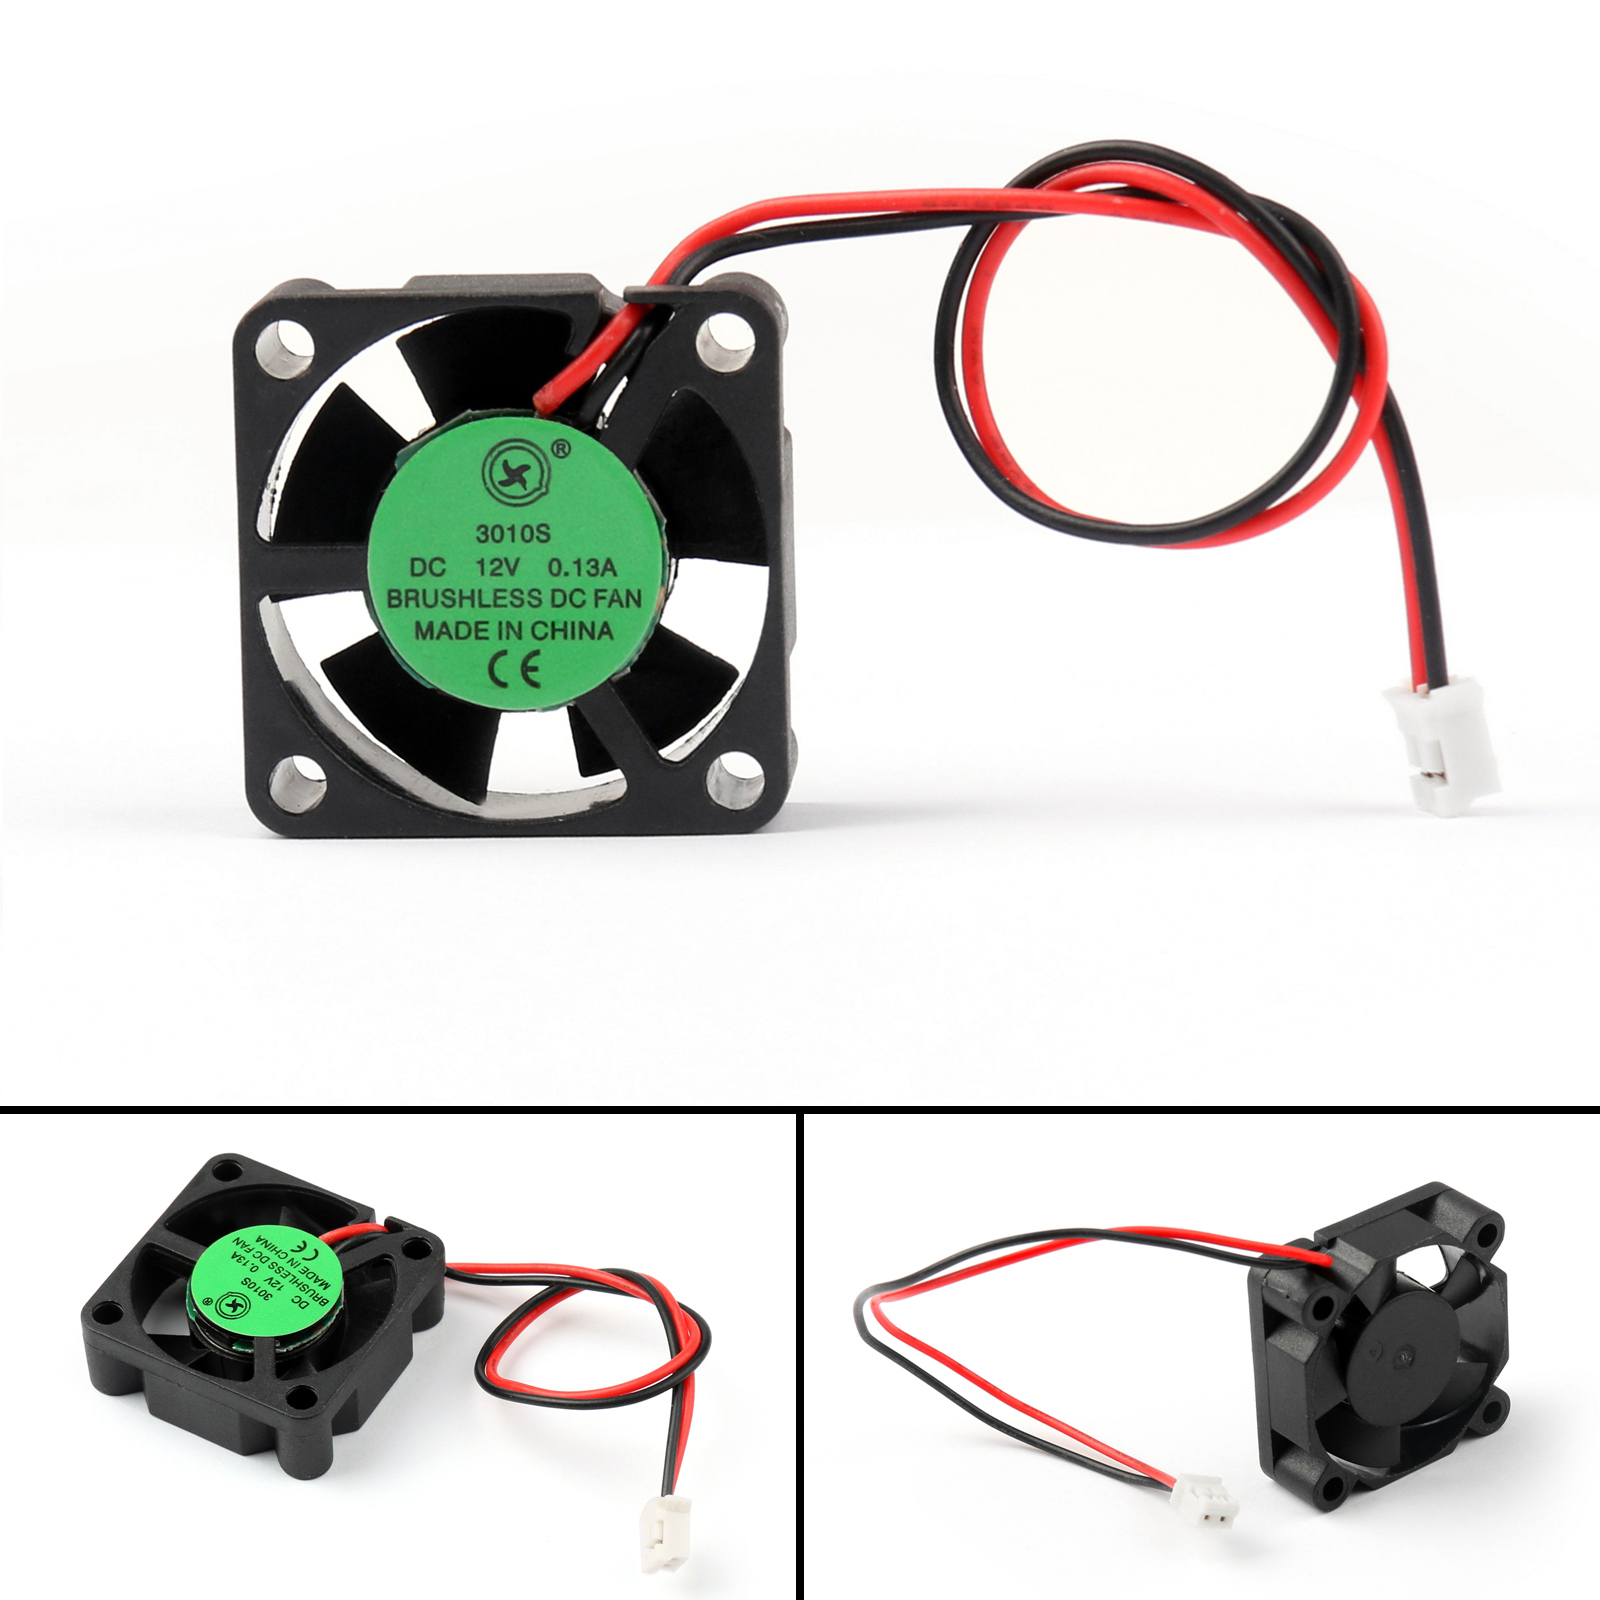 hight resolution of details about dc brushless cooling pc computer fan 12v 3010s 30x30x10mm 0 13a 2 pin wire ue